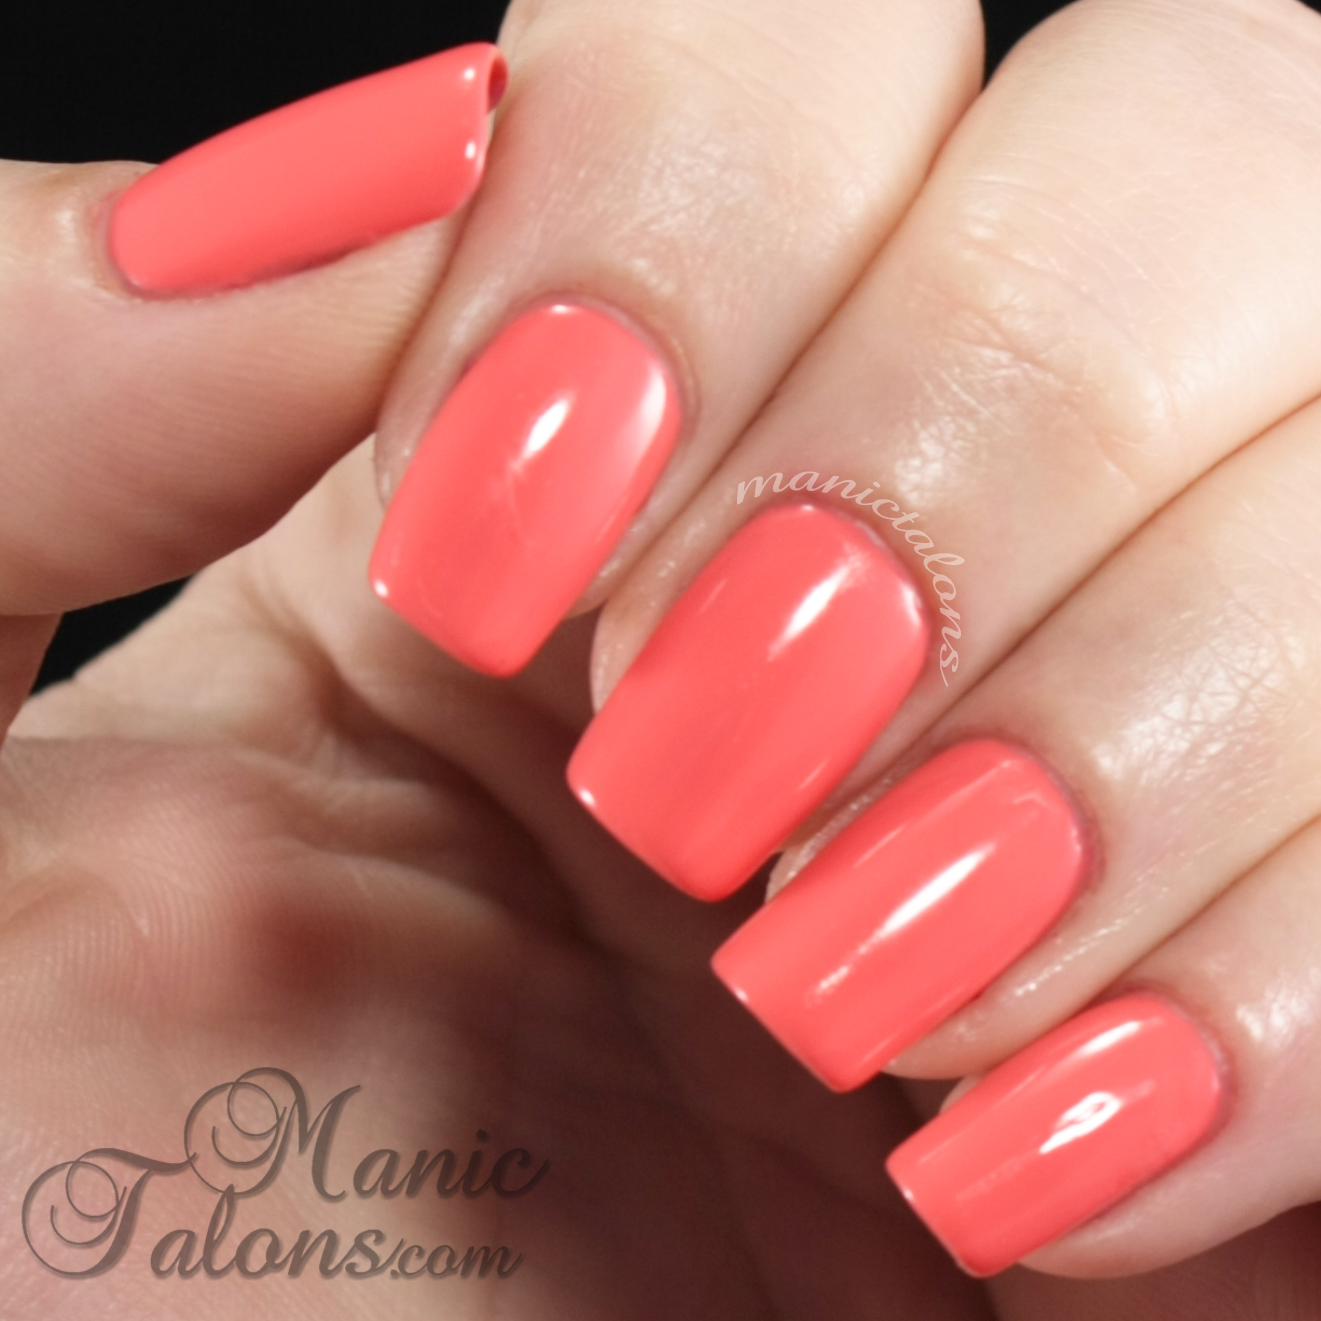 Manic Talons Nail Design March